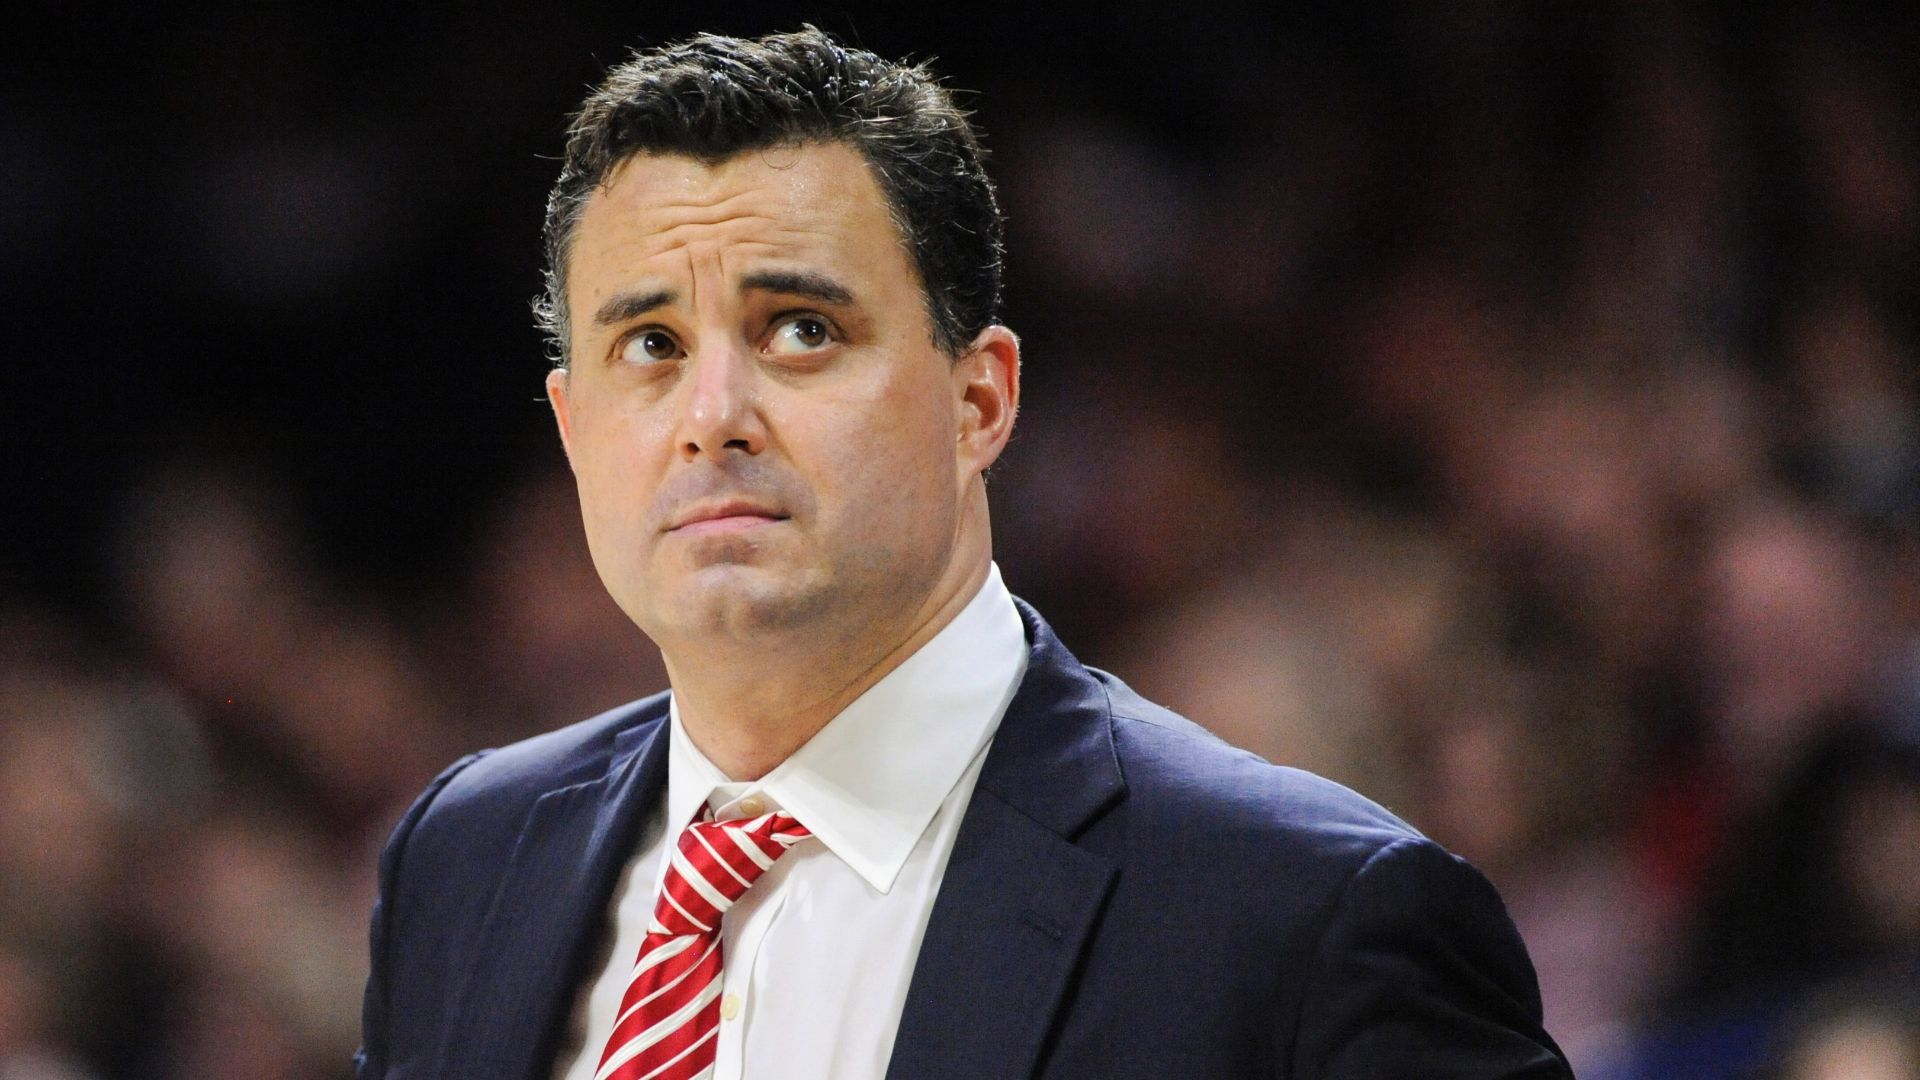 Sean Miller recorded on FBI wiretap